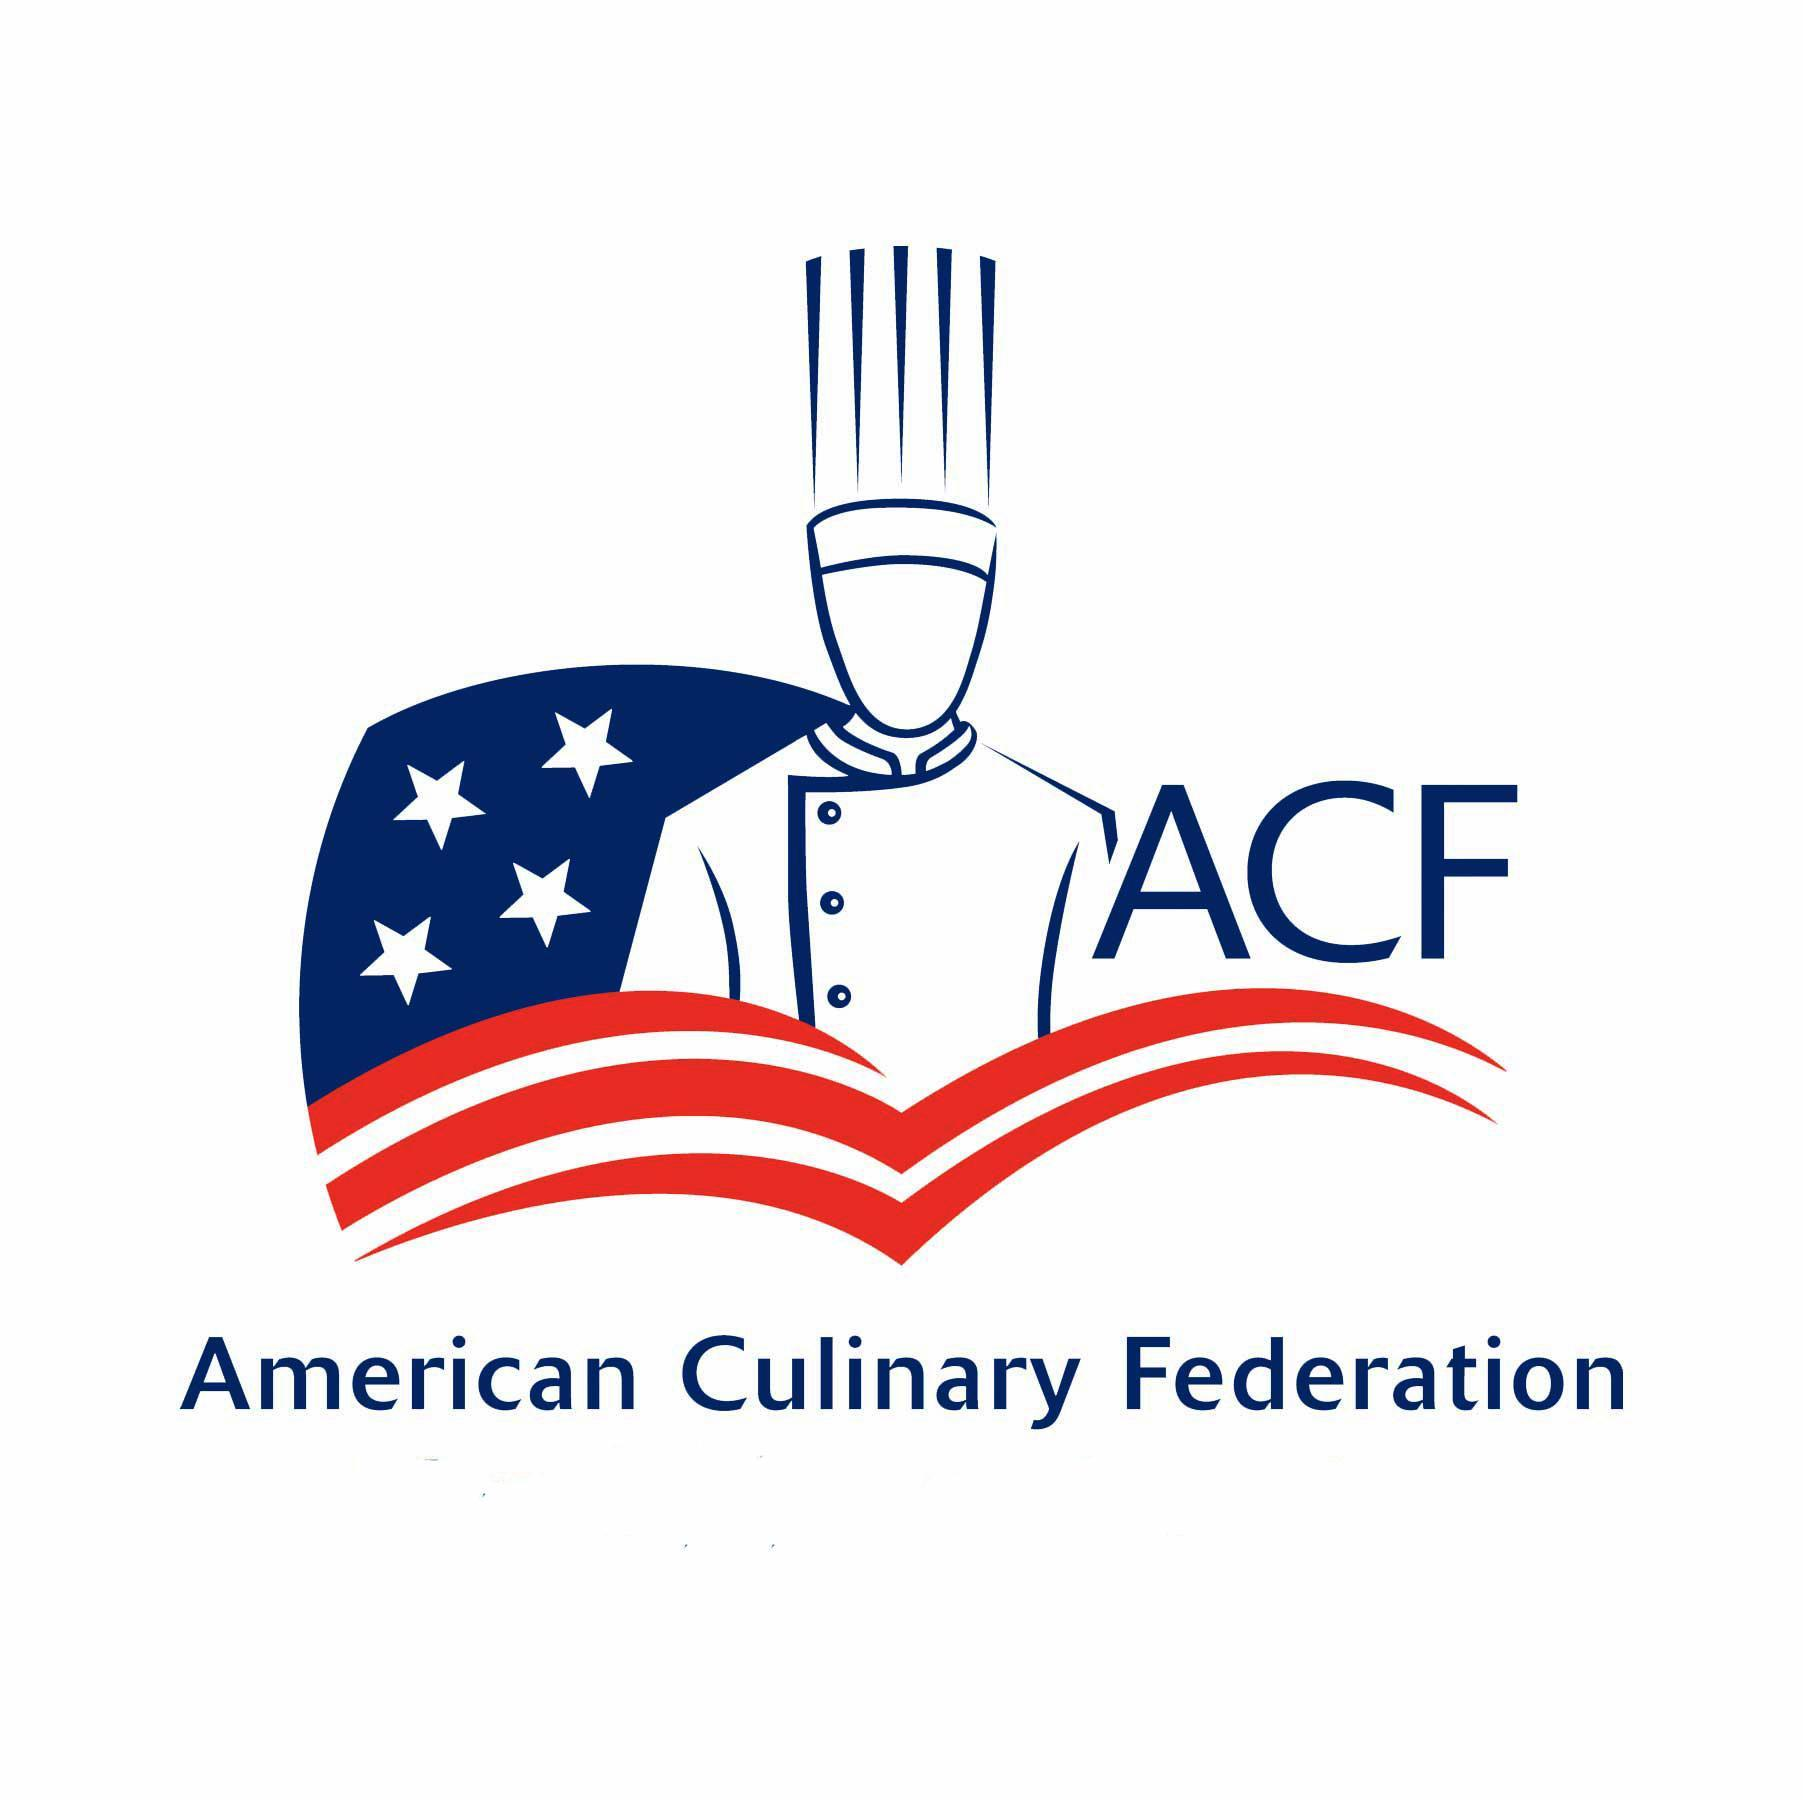 ACF logo, outline of a chef and the American flag